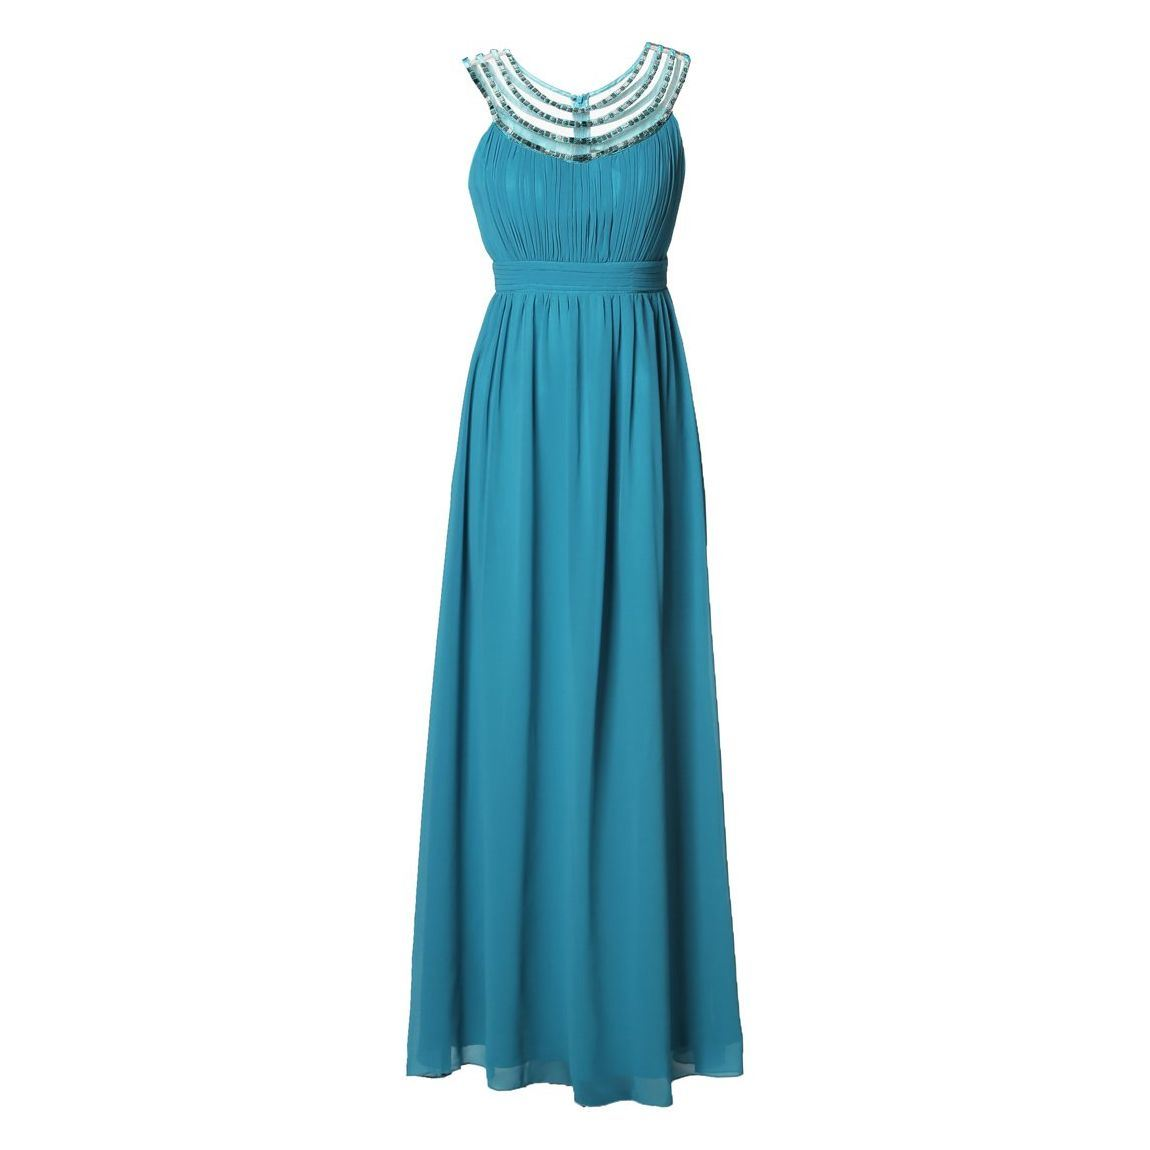 Elegantes Evening Dress mit Biesenfalten auf The Front Yoke, Made From 100%Polyester